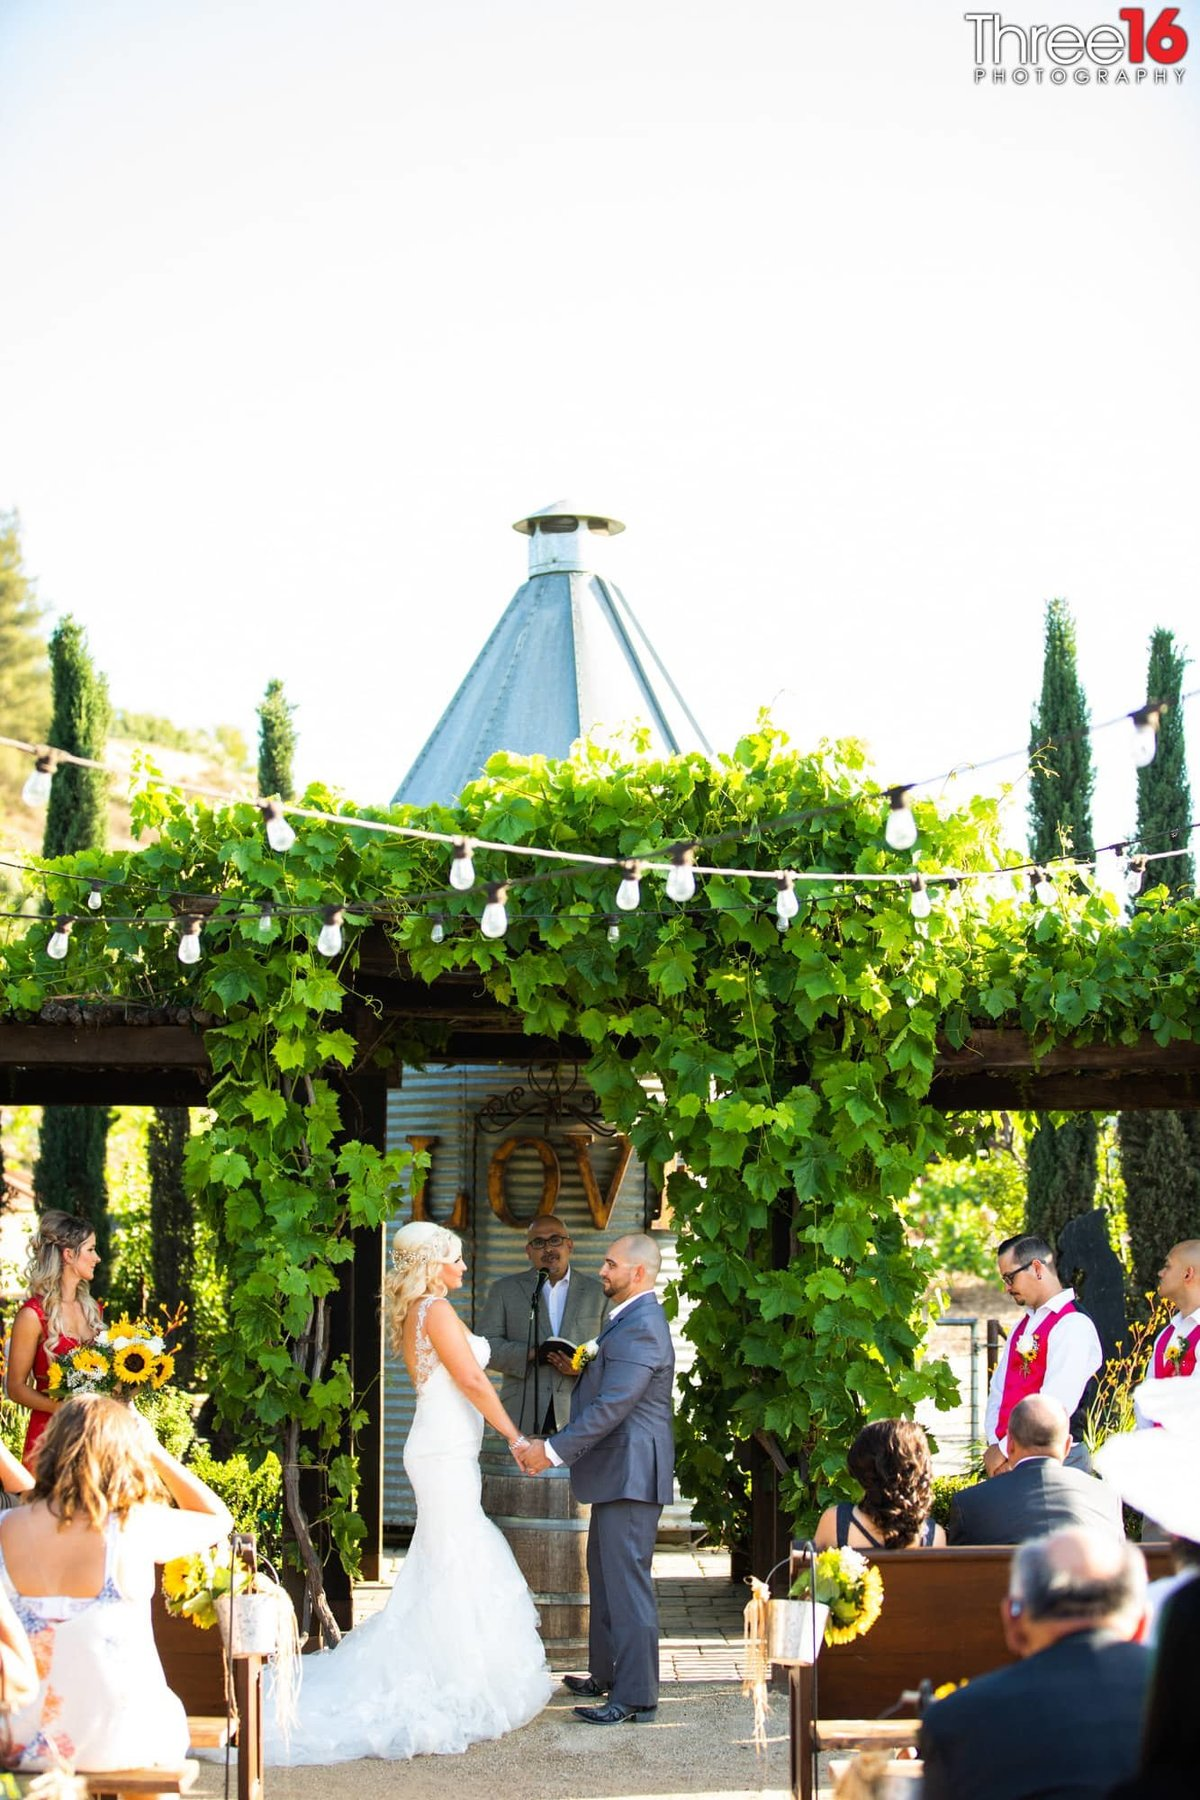 Peltzer Winery Wedding Venue Photography Temecula Bride and Groom Ceremony Vows